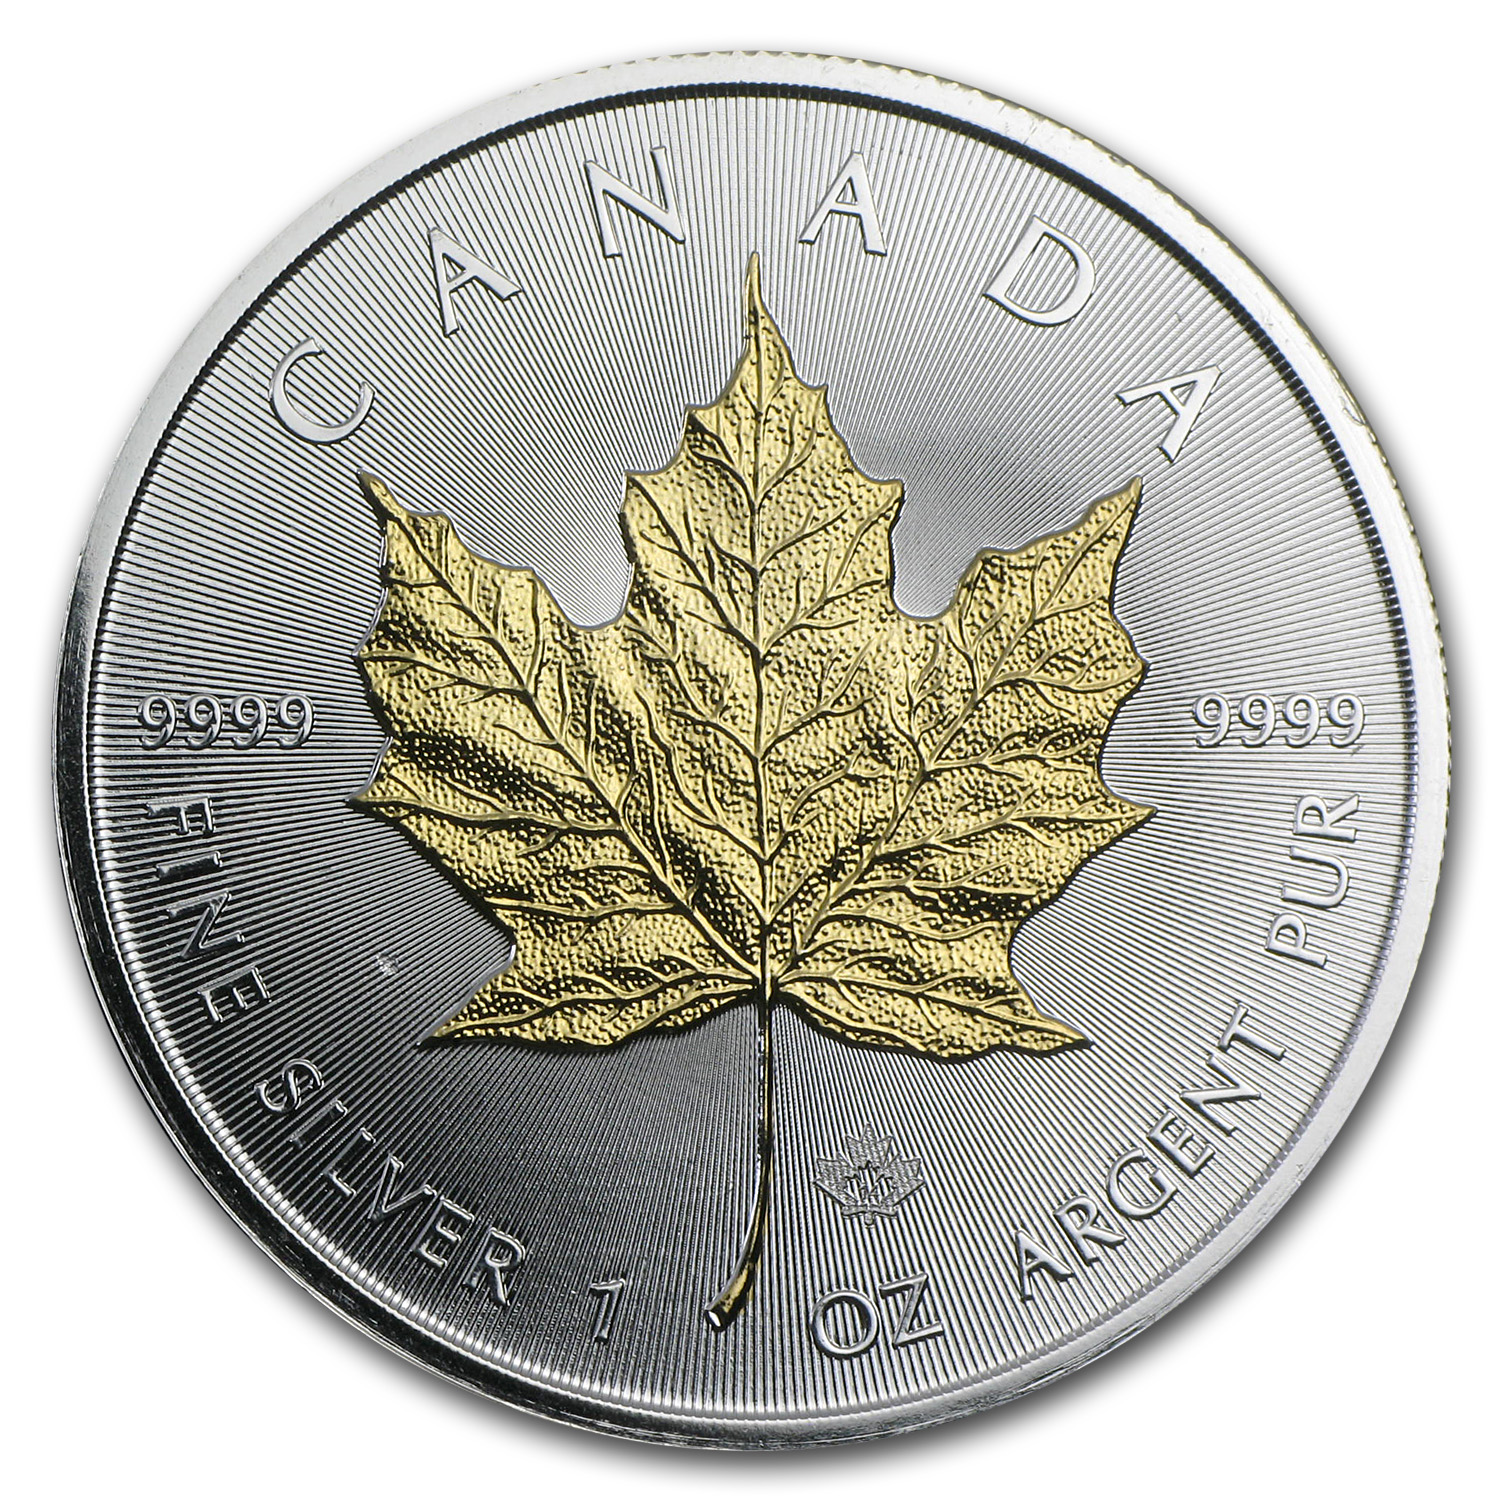 2014 Canada 1 oz Silver Maple Leaf BU (Gilded)